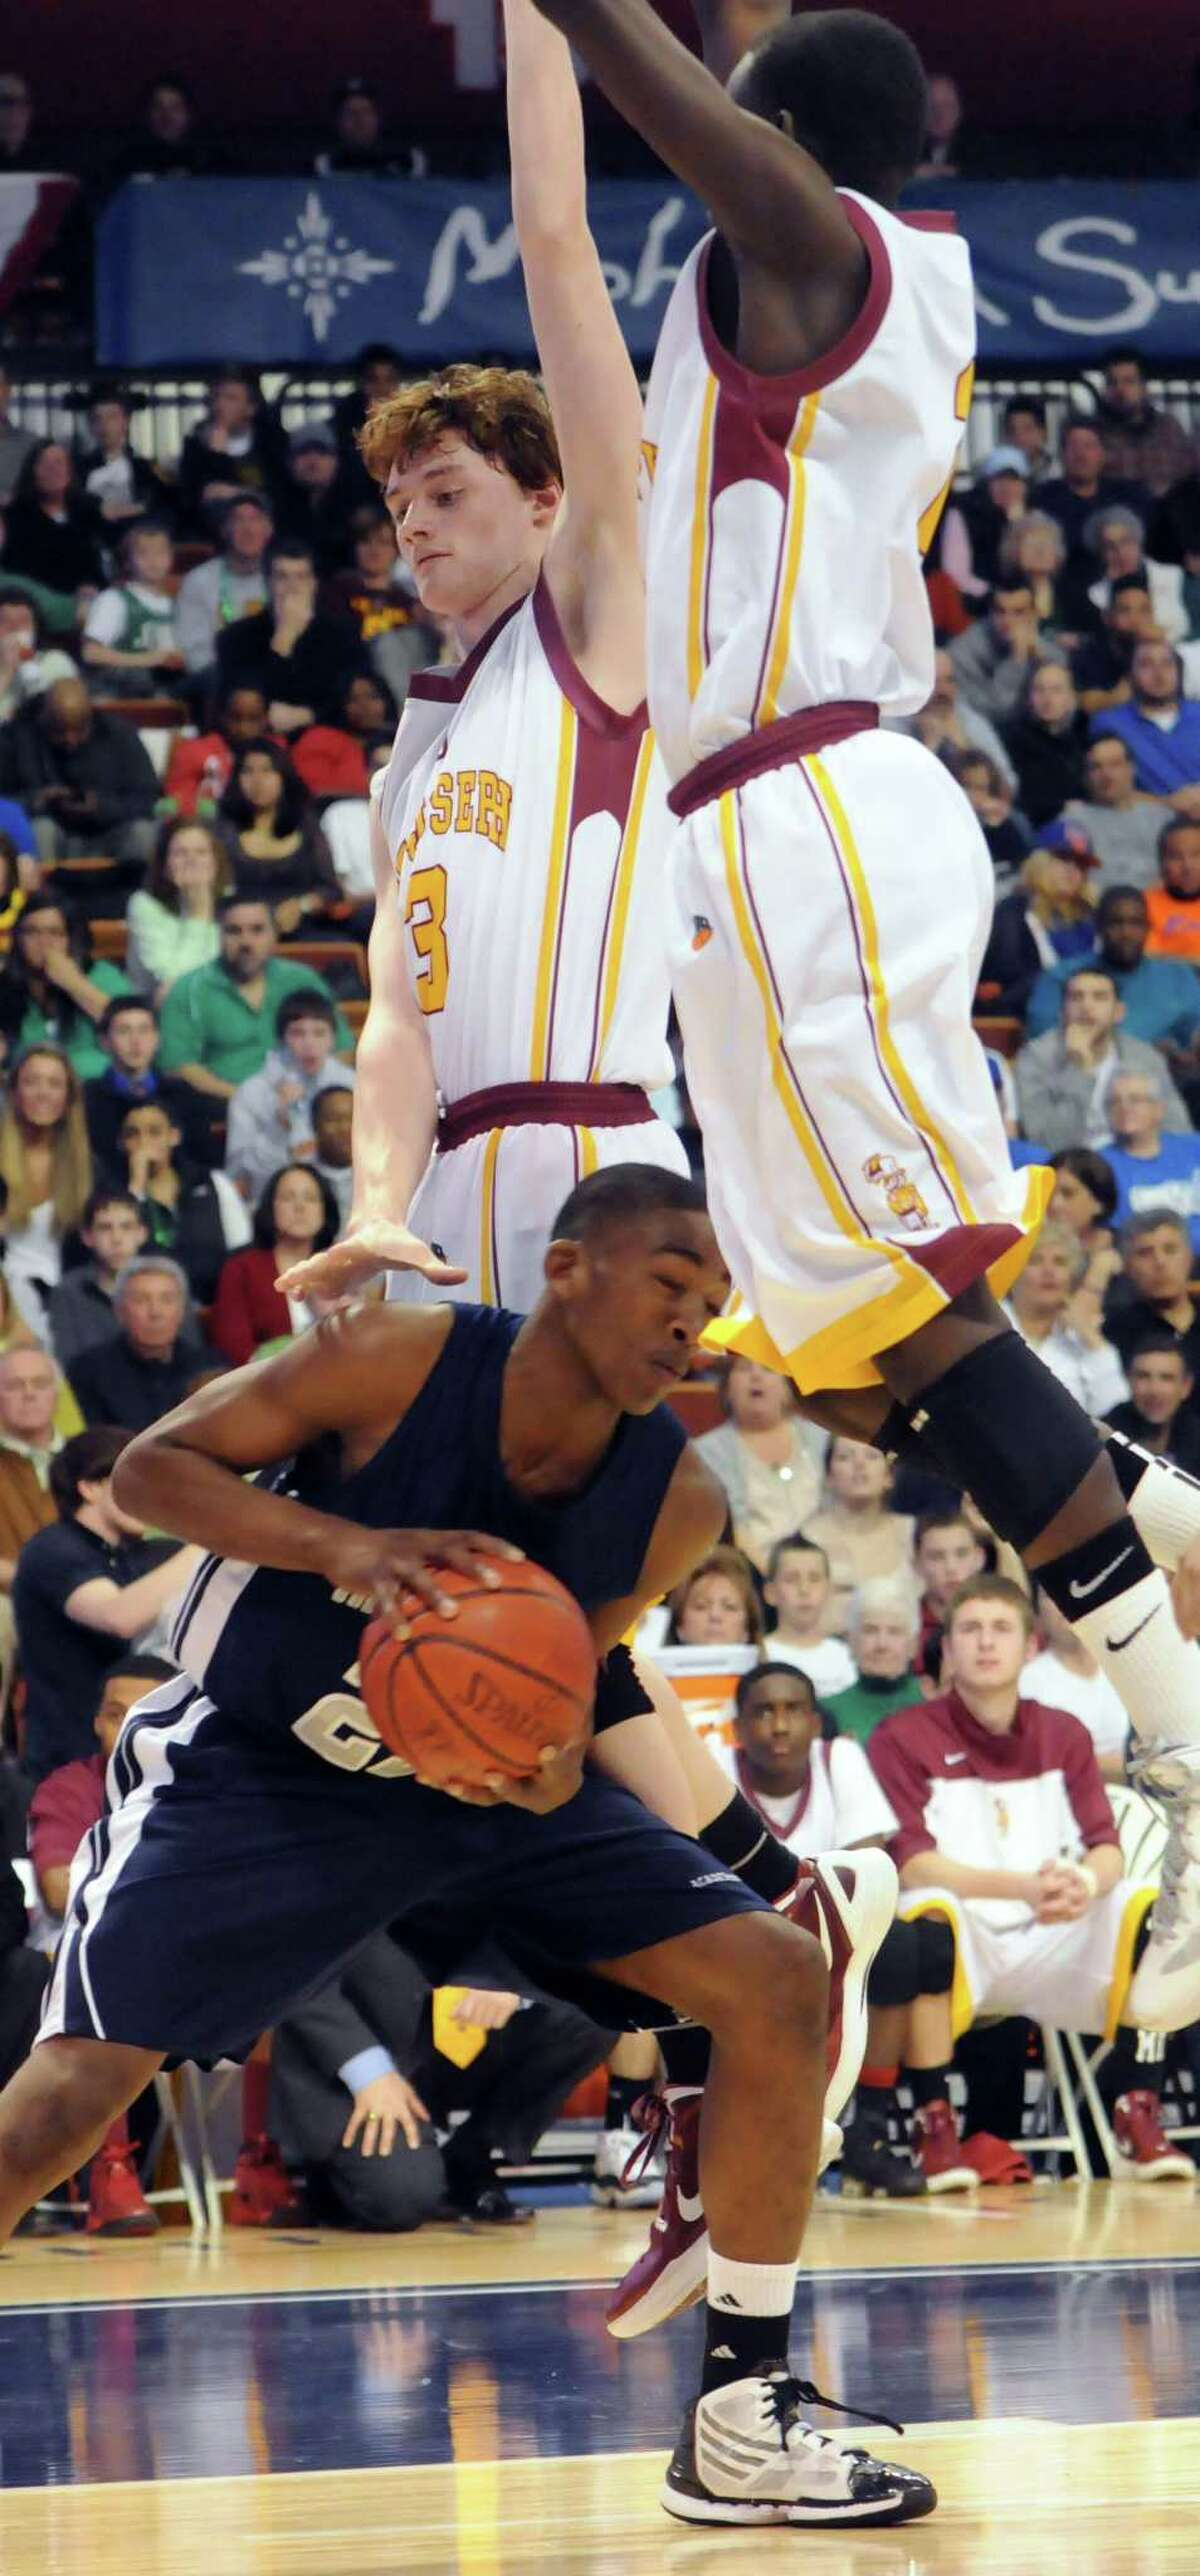 Raiquan Clark head fakes a pair of St. Joseph defenders in the 2012 Class LL championship game. Photo by Mara Lavitt/New Haven Register 3/17/12